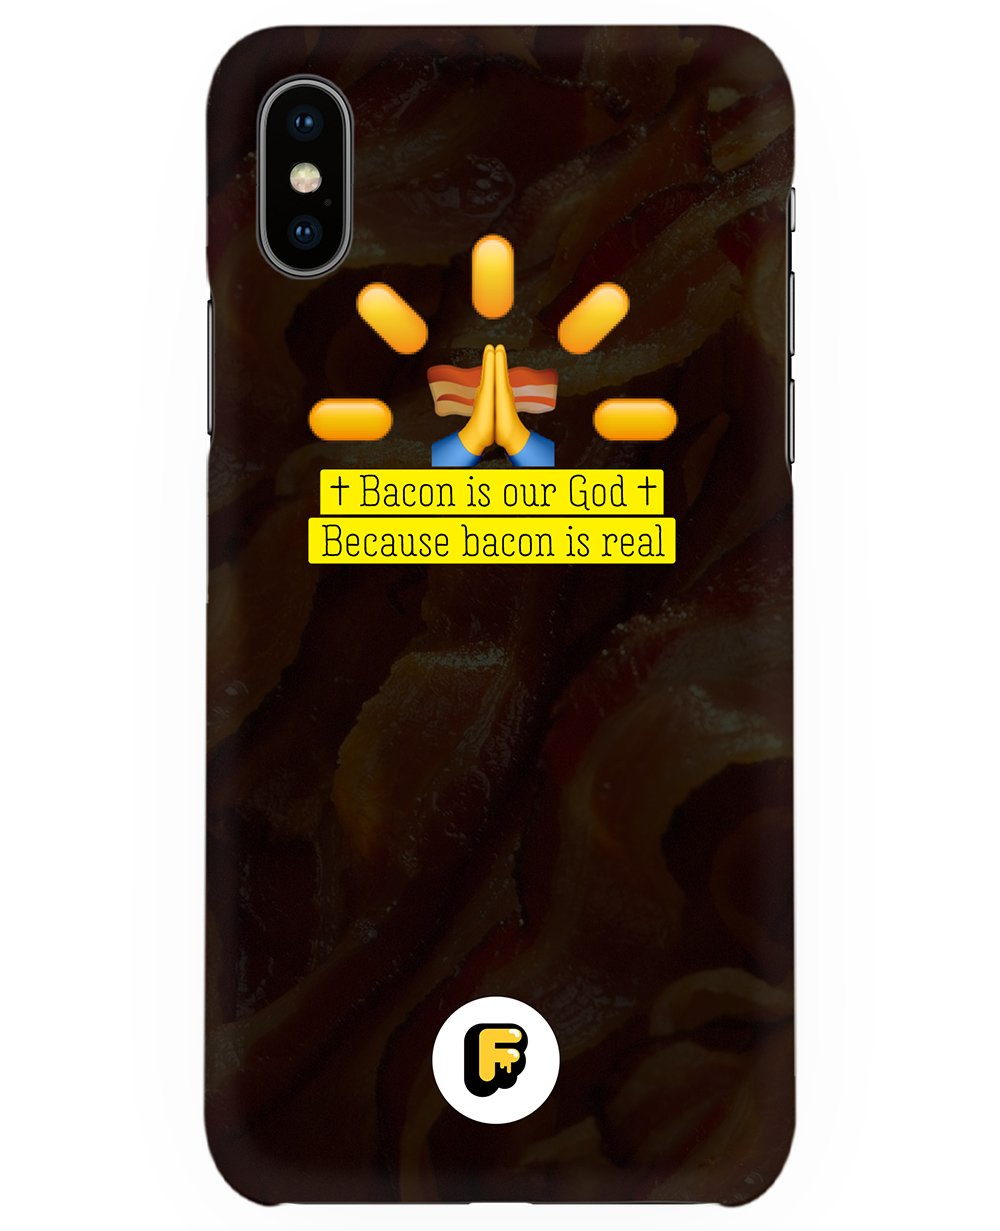 Bacon Is Our God Print Iphone case - Phone cases - FOOD PORN CLUB - BRANMA